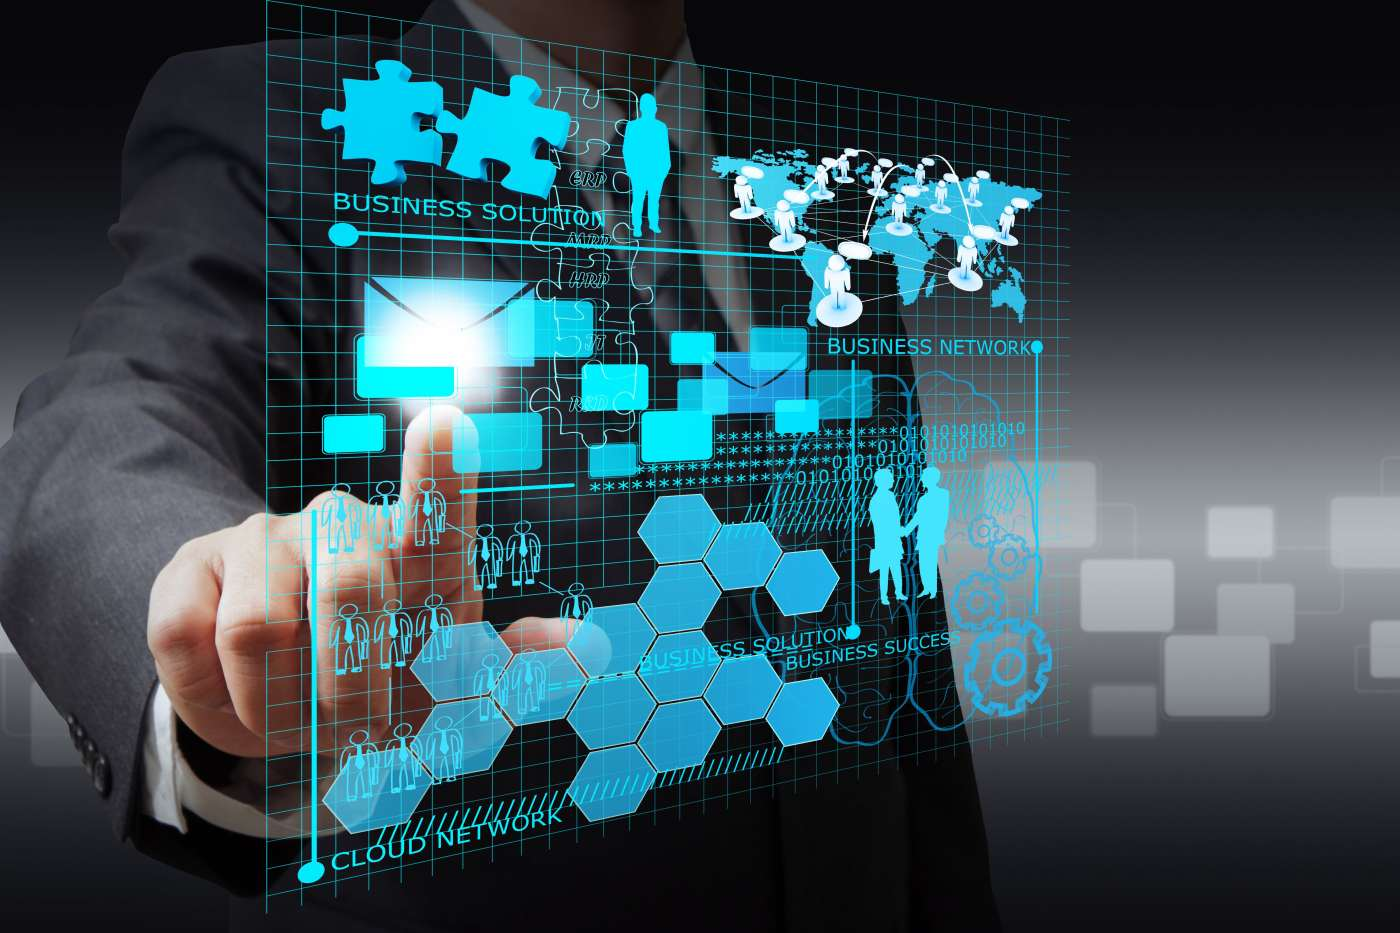 businessman-hand-point-on-virtual-business-network_f18mnYSO-min